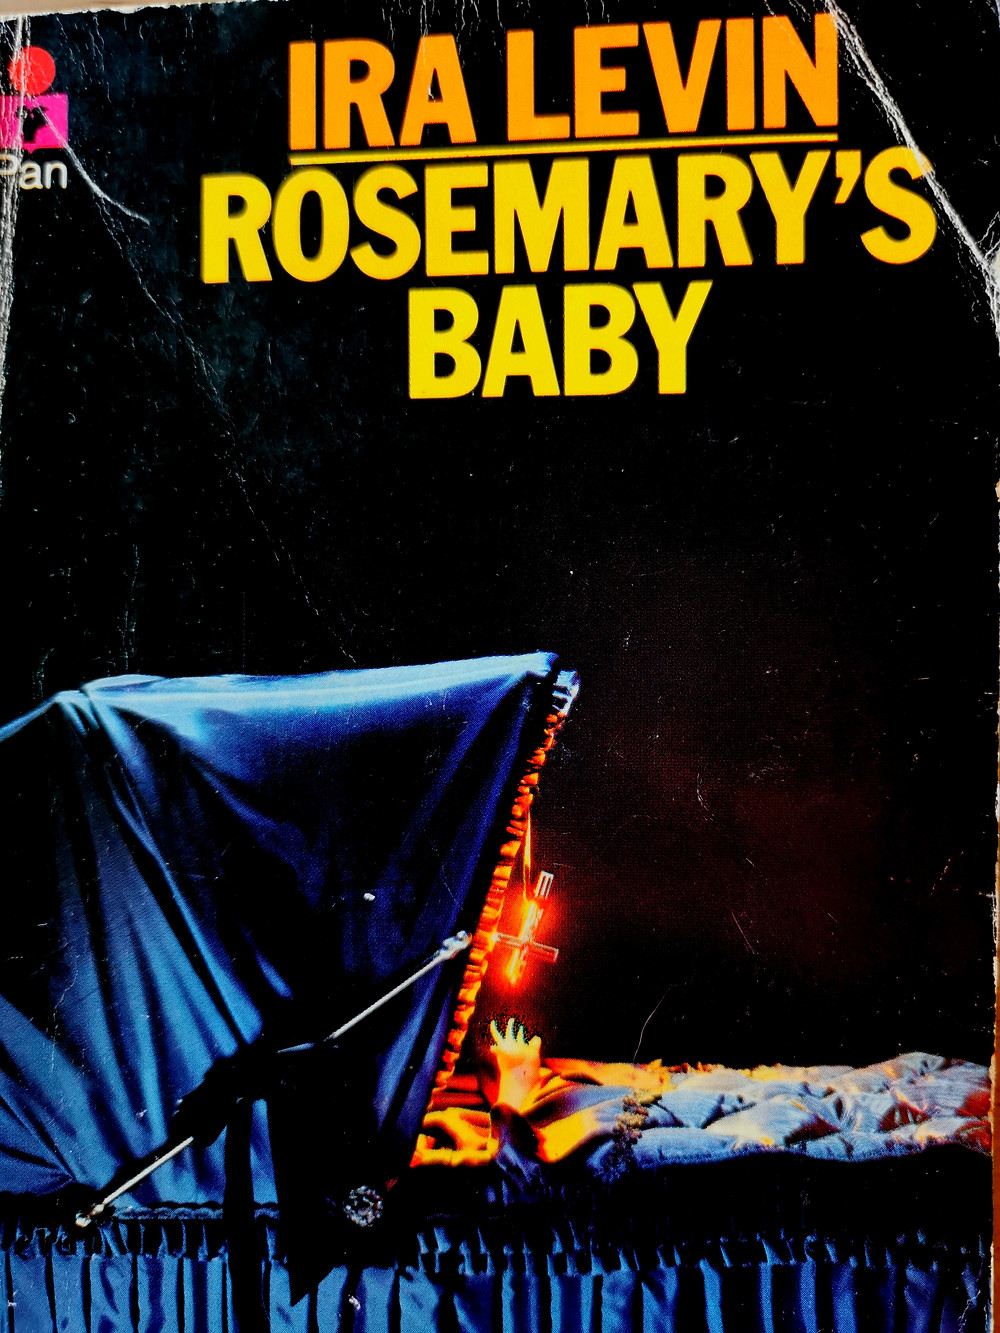 Cover photo of Ira Levin's 'Rosemary's Baby' featuring a baby in a bassinet reaching for an inverted flaming crucifix